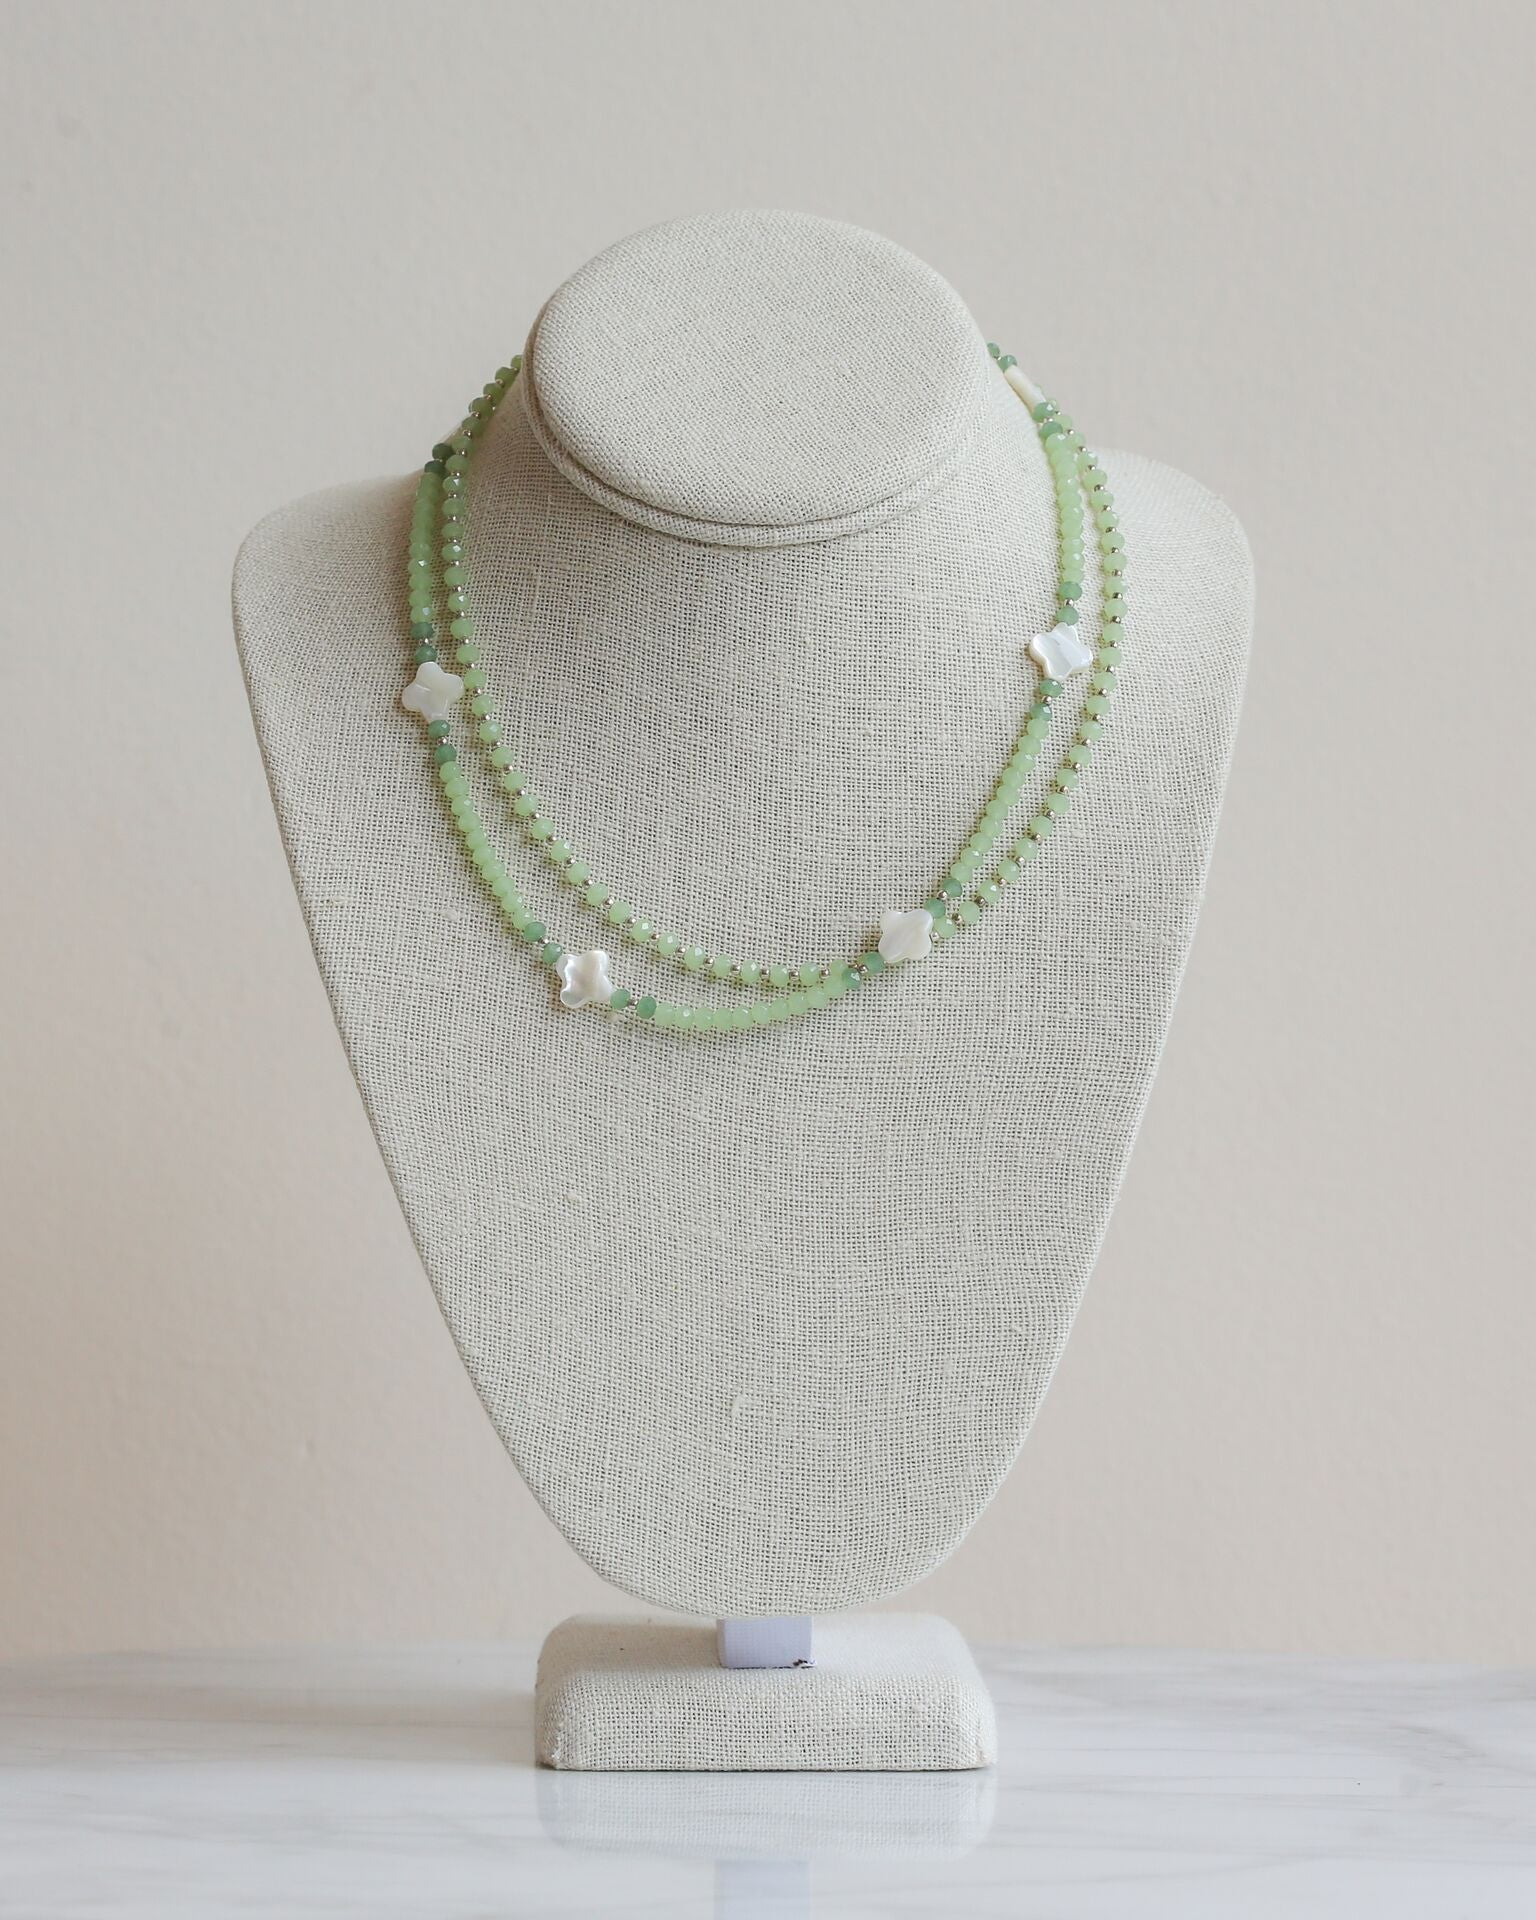 dp sterling necklace one com silver with day freshwater amazon idea gift pea handmade pearl peapod mothers